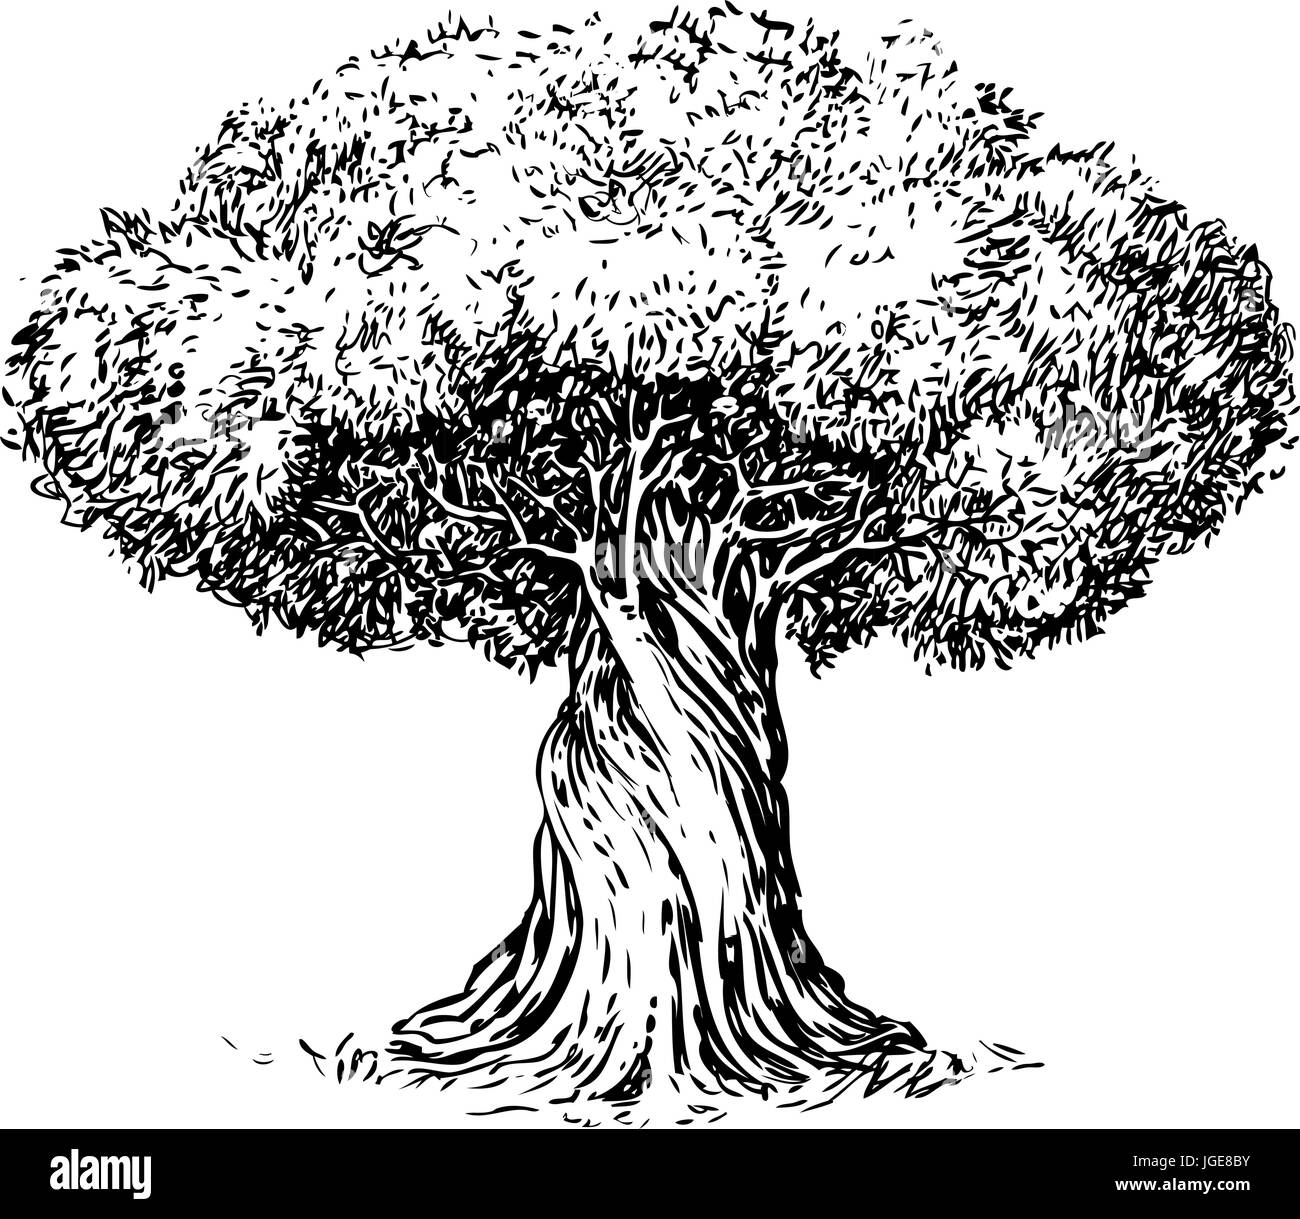 olive tree old engraving ecology environment nature sketch